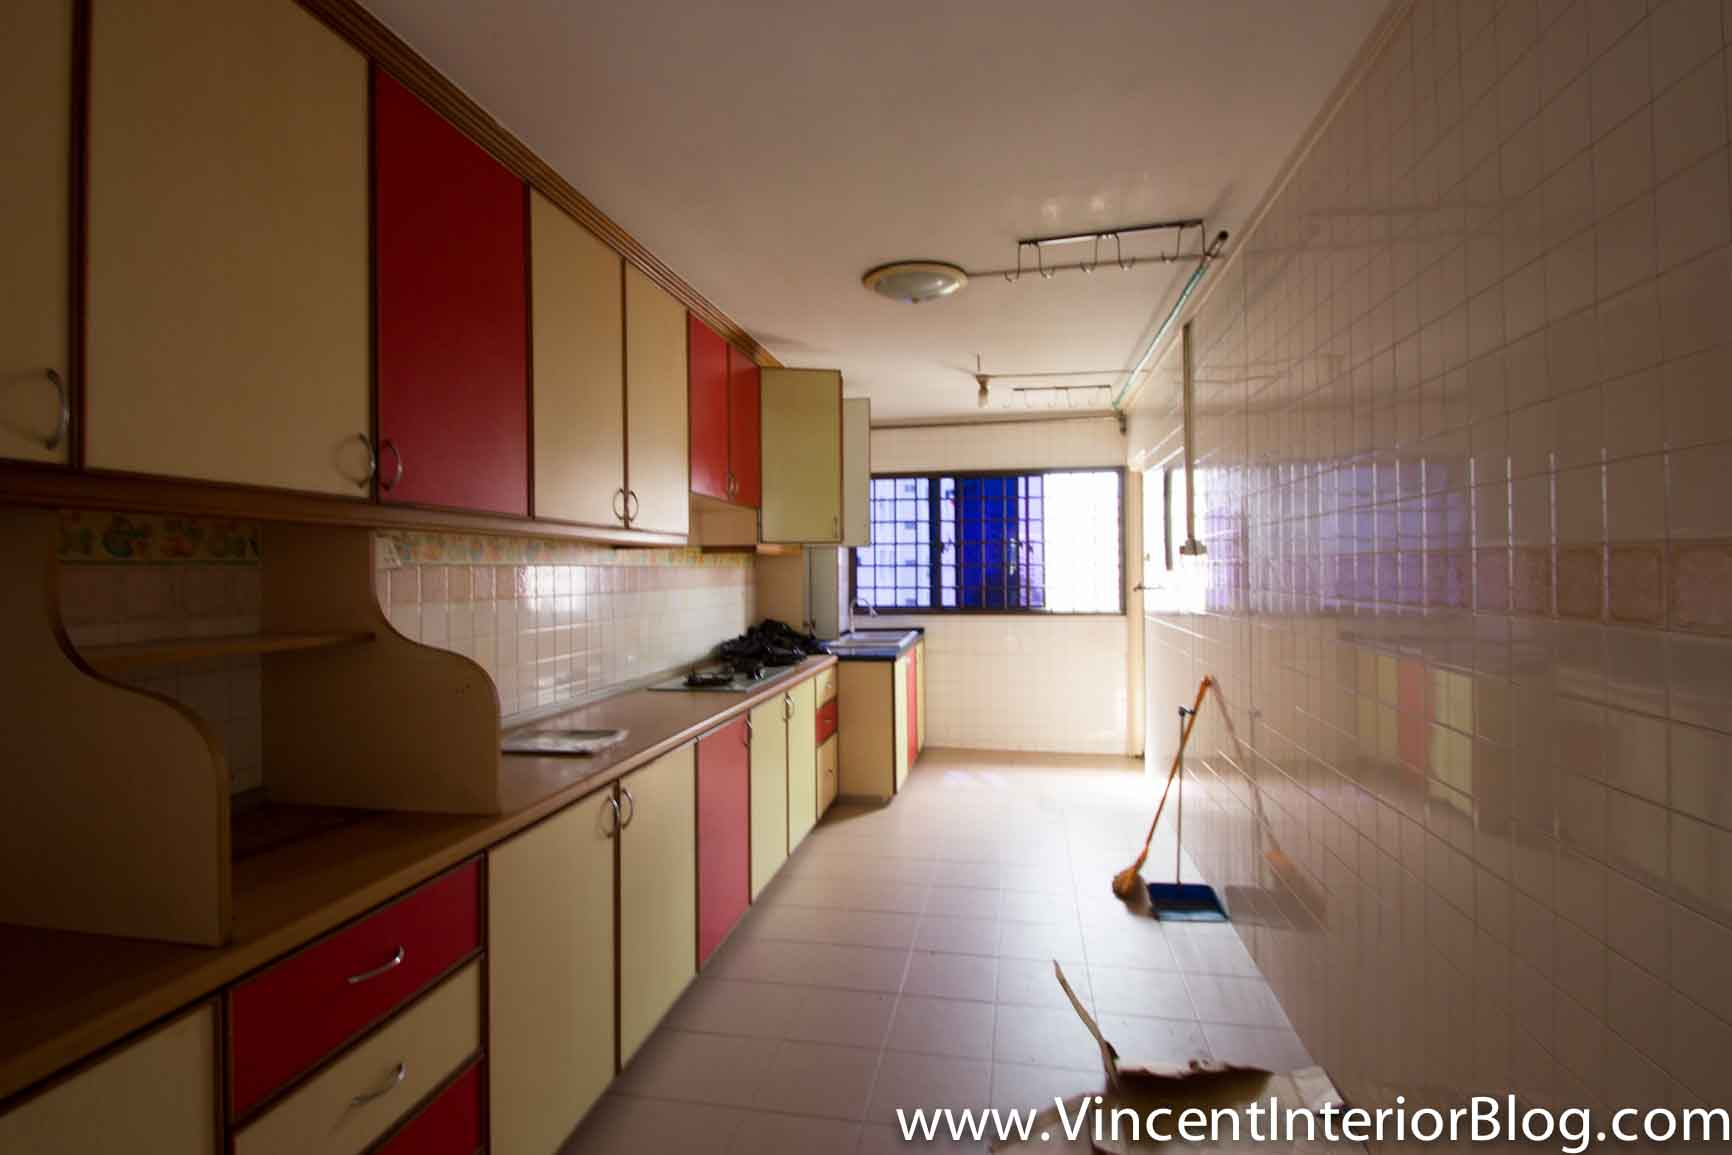 Hdb 5 room kitchen design joy studio design gallery for Interior design singapore hdb 5 room flat